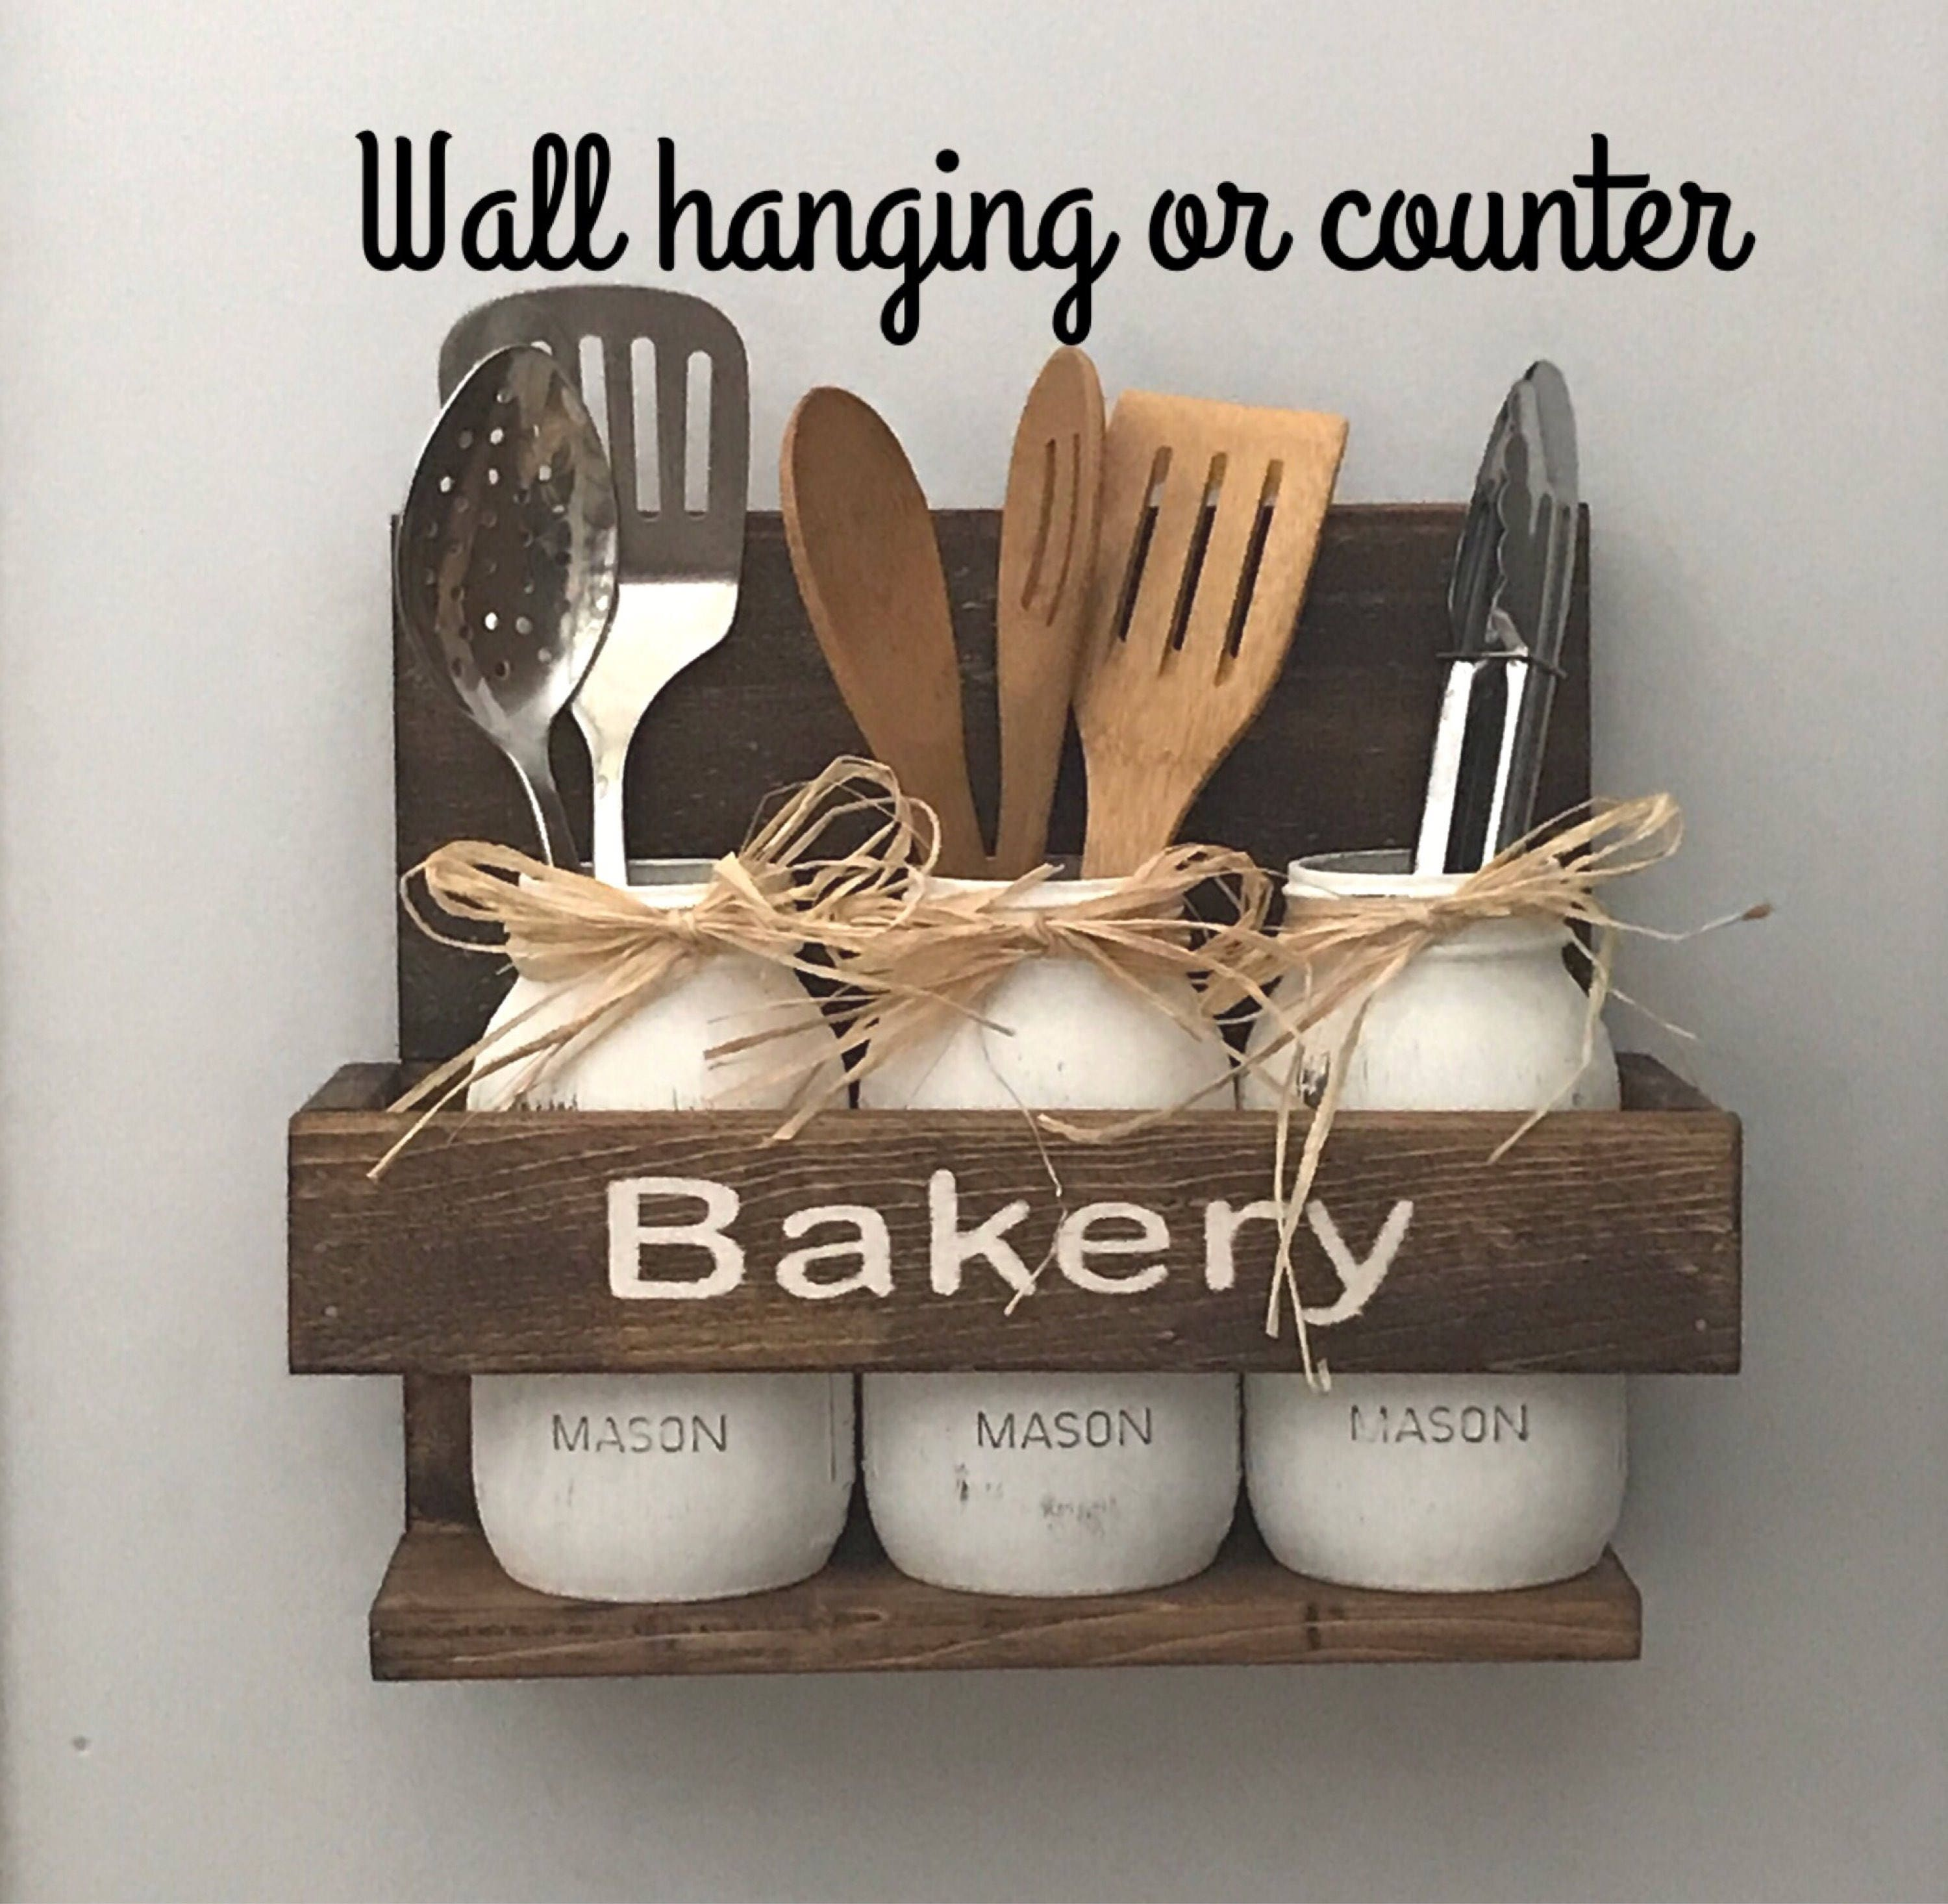 Home Design Gift Ideas: Rustic Country Kitchen Rustic Home Decor Rustic Wood Decor